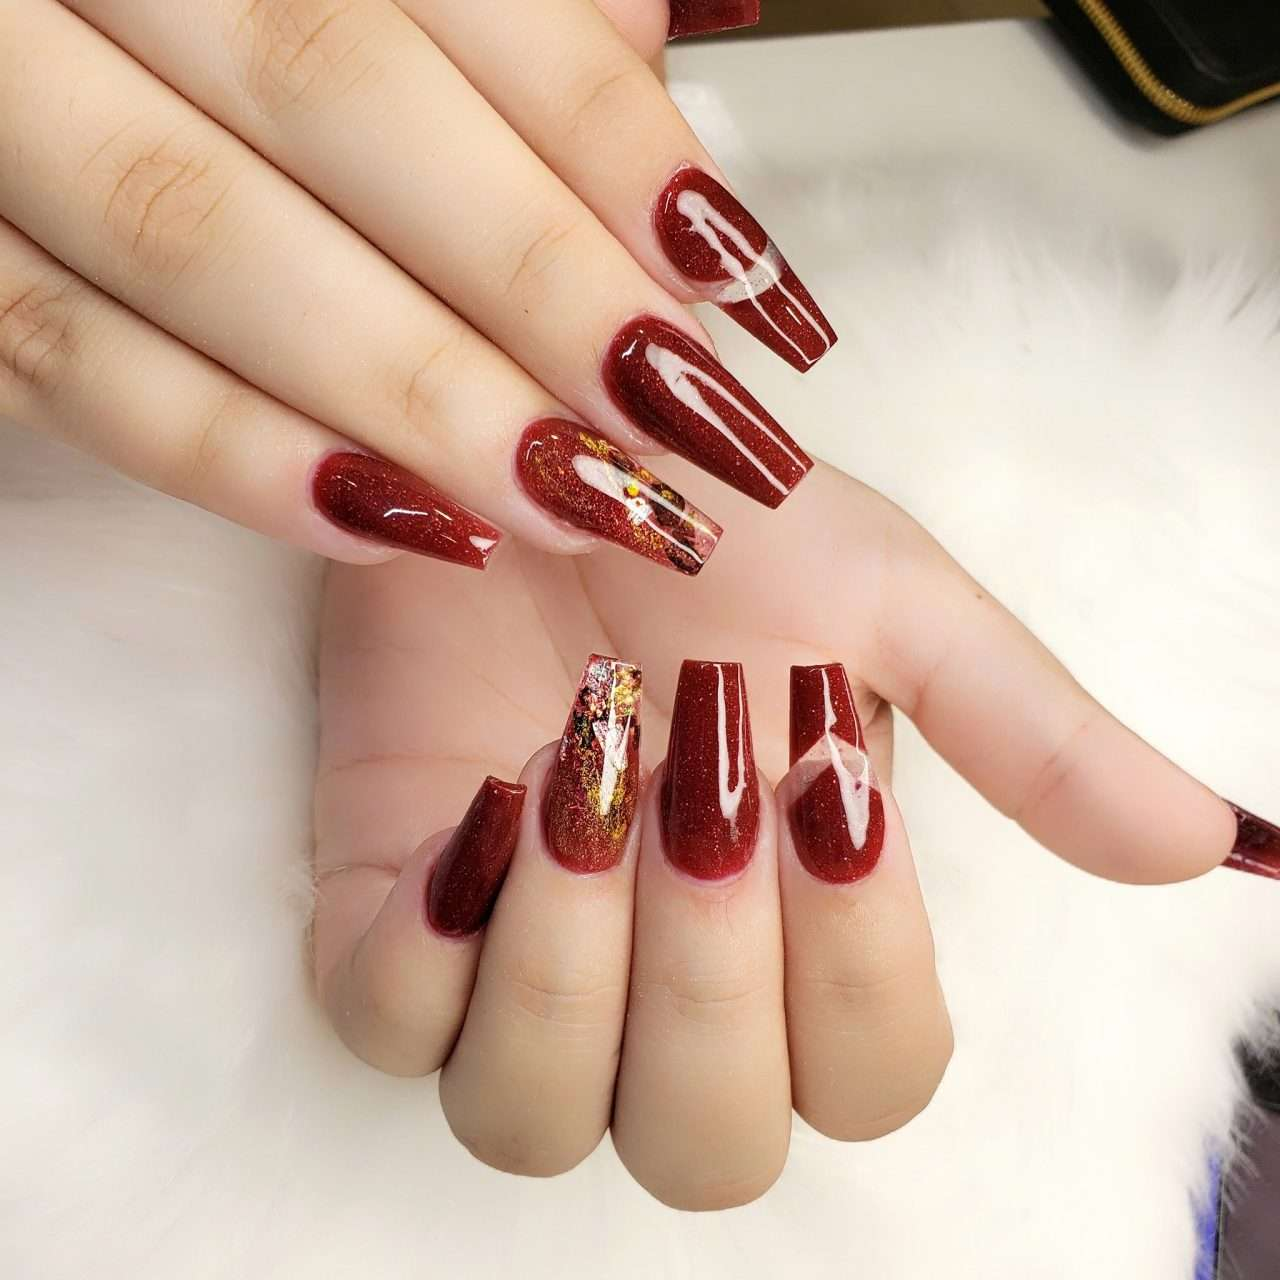 coffin shape nails with shellac on top and designs